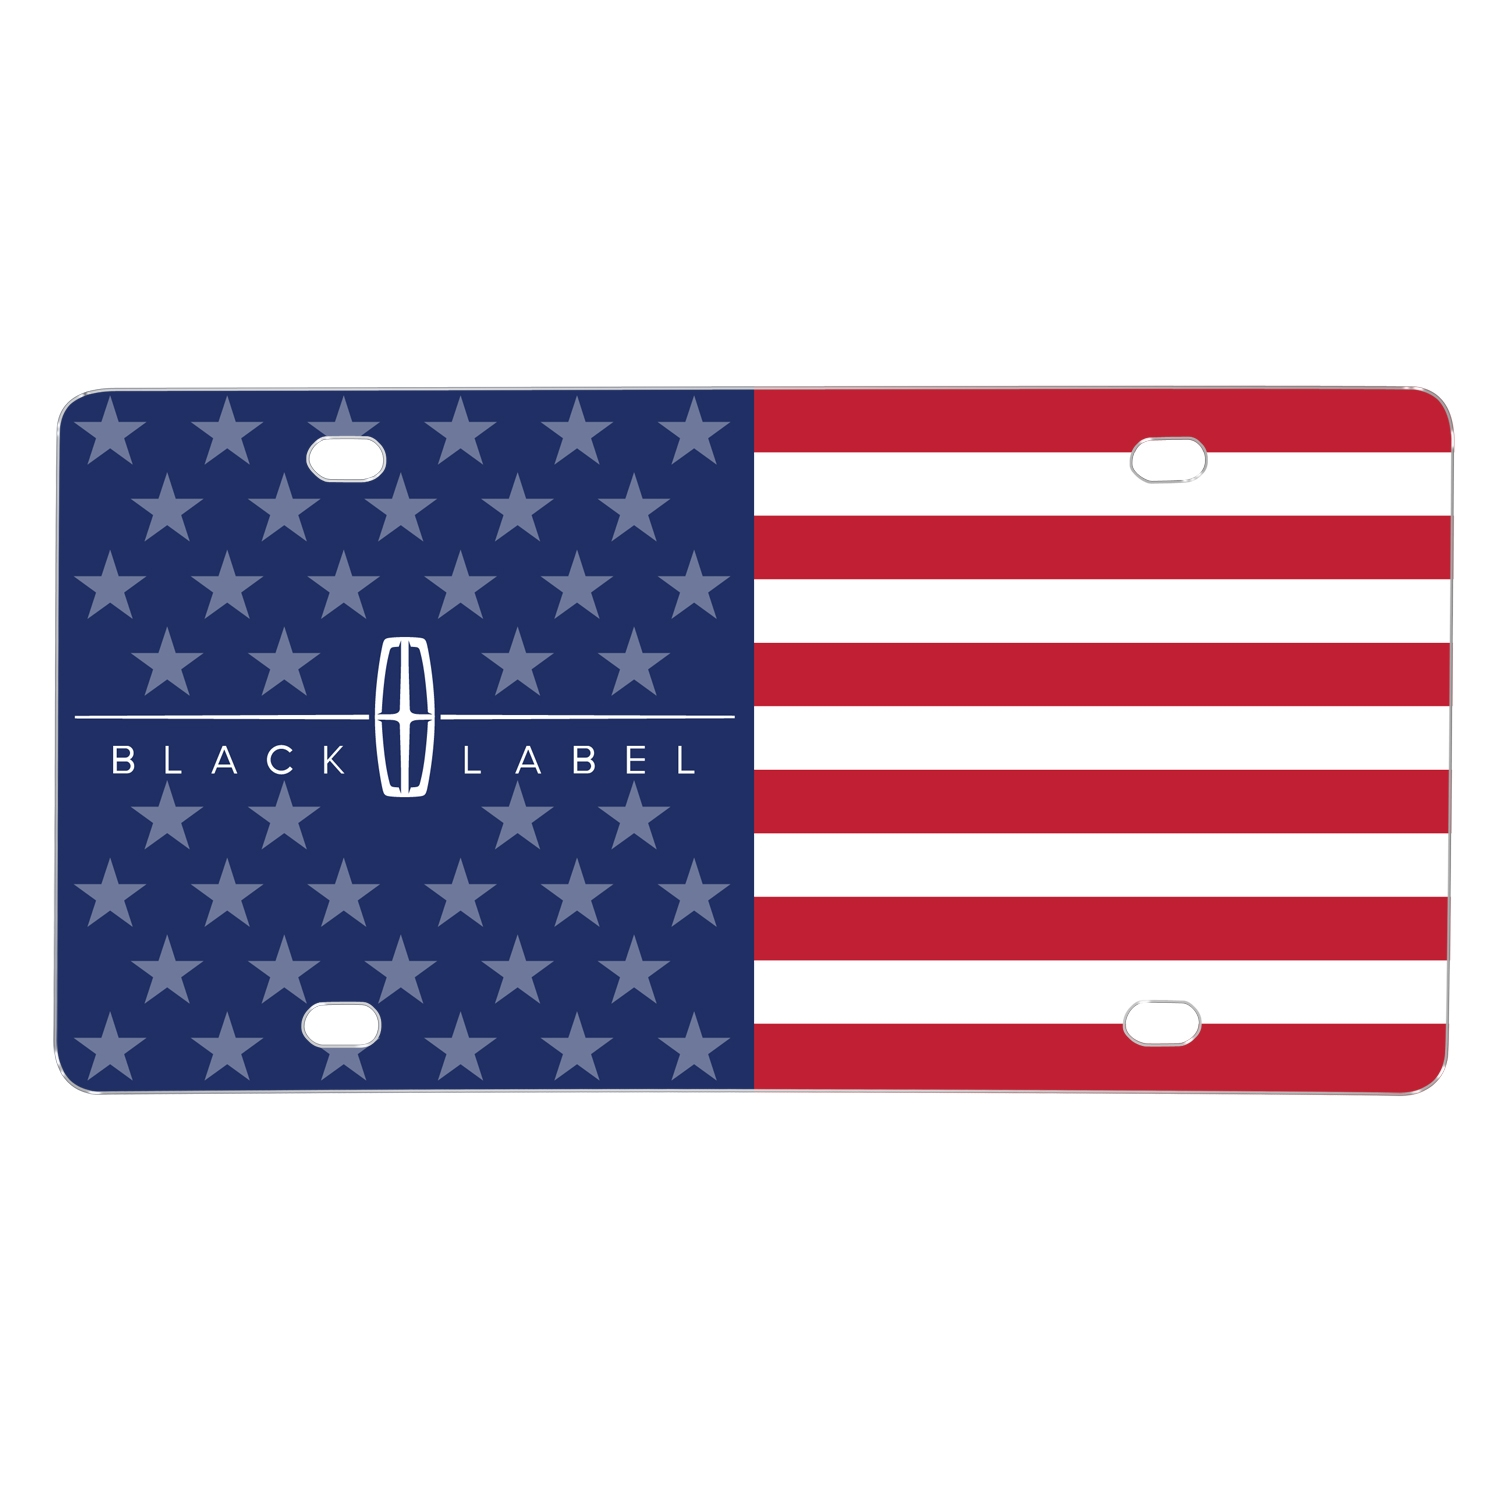 Lincoln Black Label Logo USA Flag Graphic on Aluminum Metal License Plate